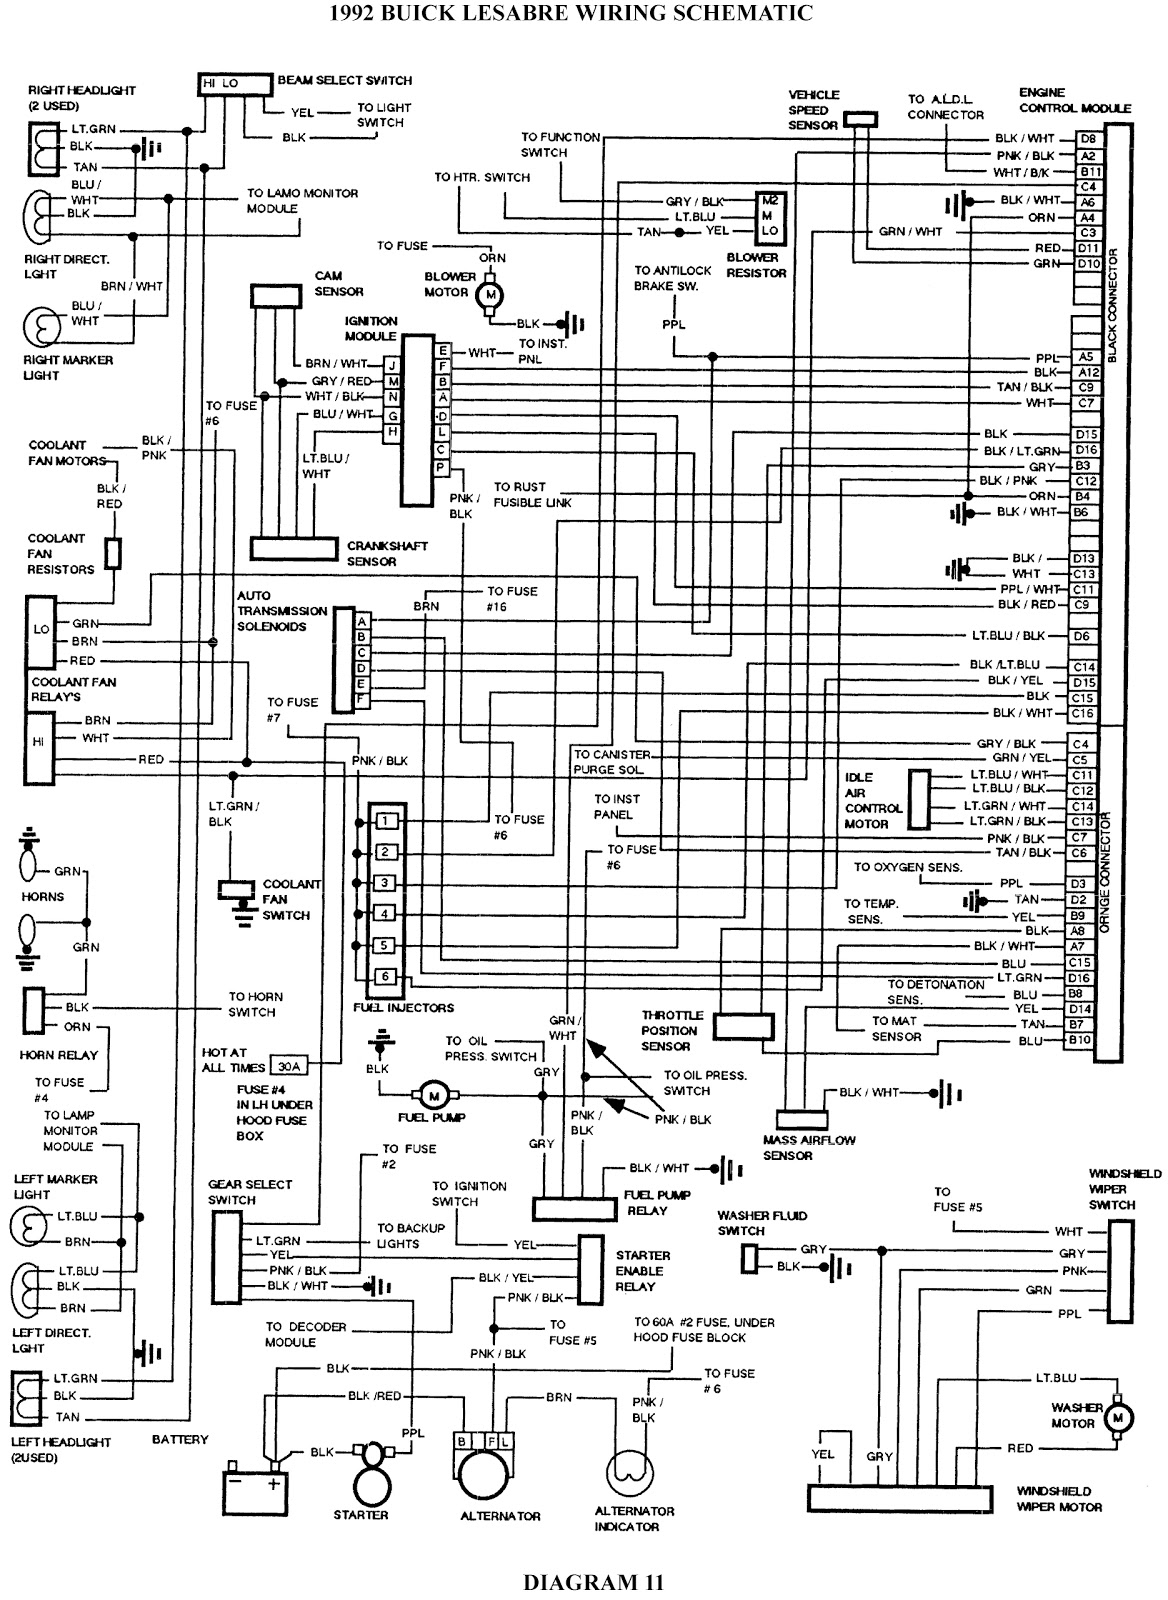 1996 buick roadmaster engine diagram wiring diagram used 1996 buick roadmaster wiring diagram [ 1168 x 1600 Pixel ]